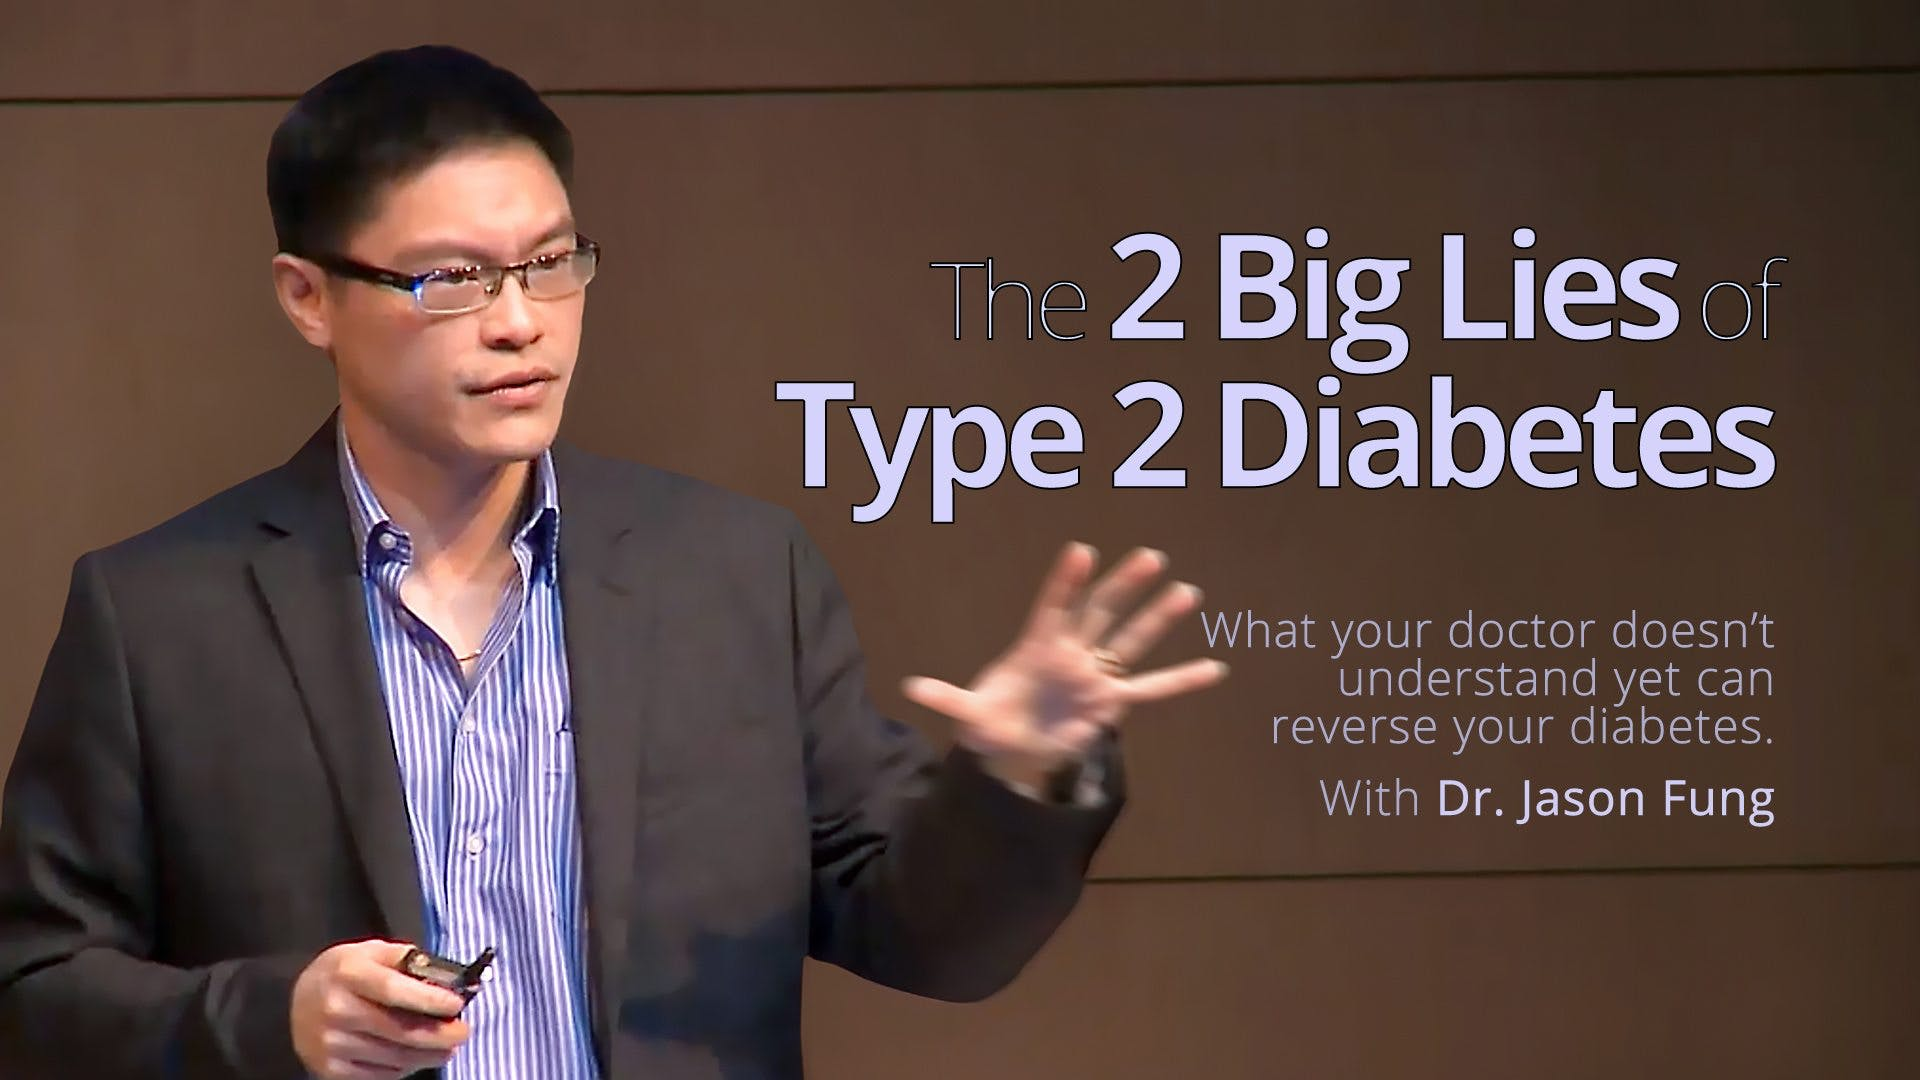 The 2 big lies of type 2 diabetes – Dr. Jason Fung